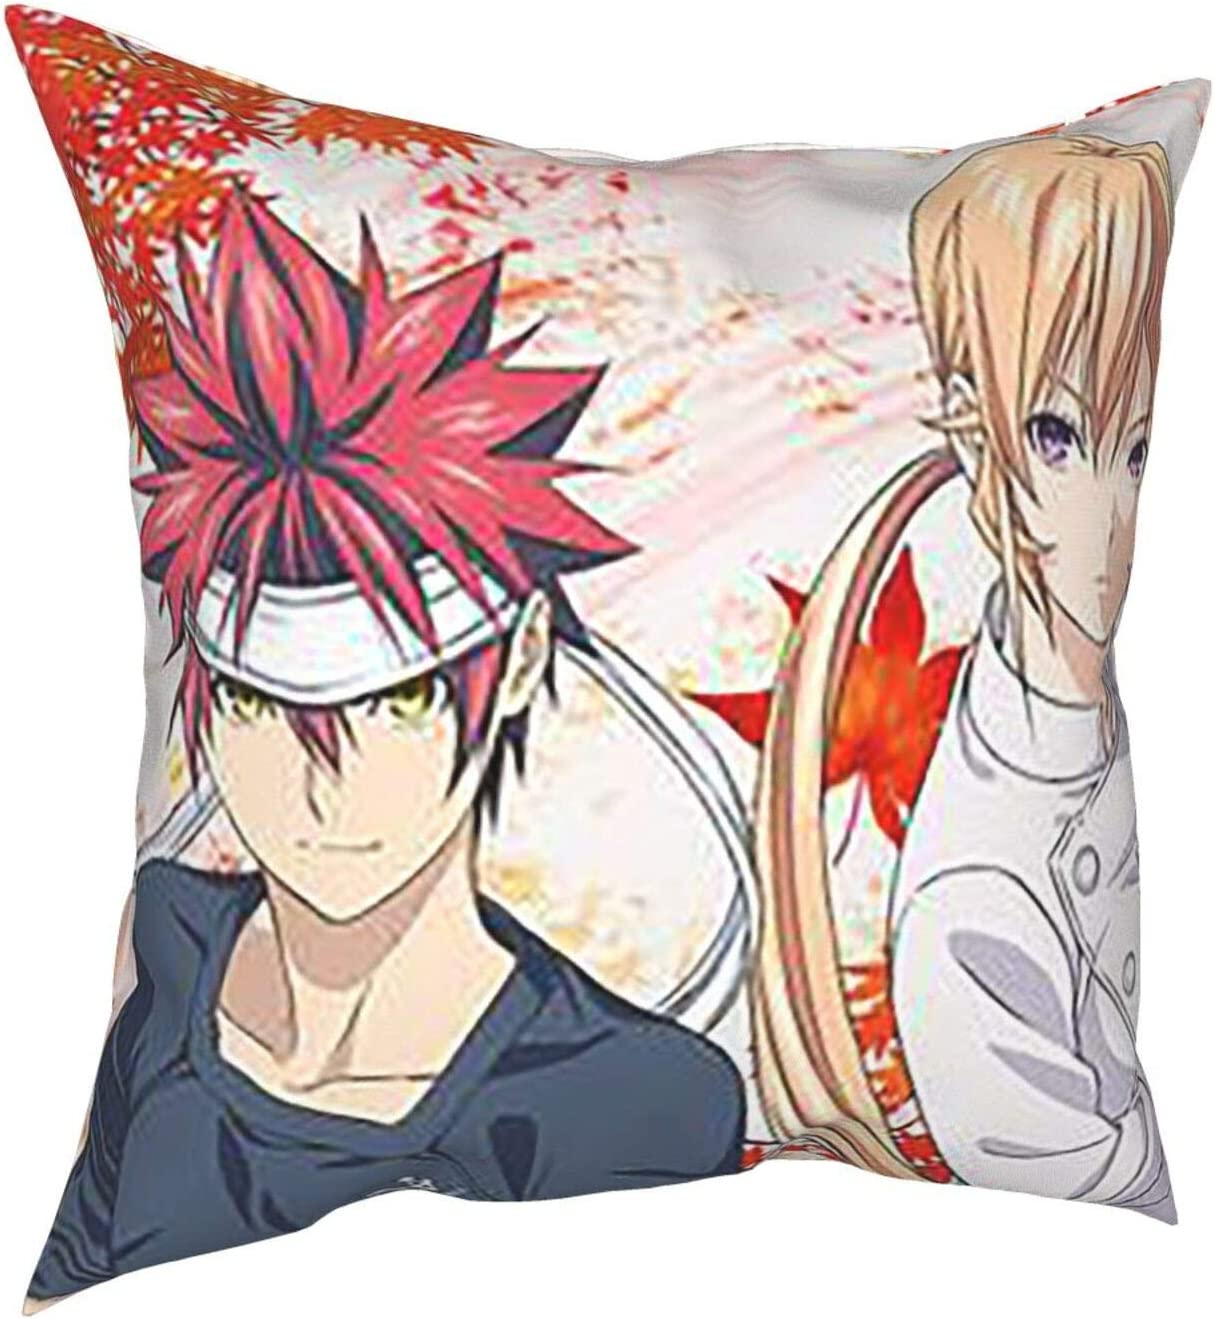 SHGDI Food Wars Throw Pillow Cover Decorative Square Pillowcase Super Soft Farmhouse Cushion Case for Sofa Couch Bed Home Decoration